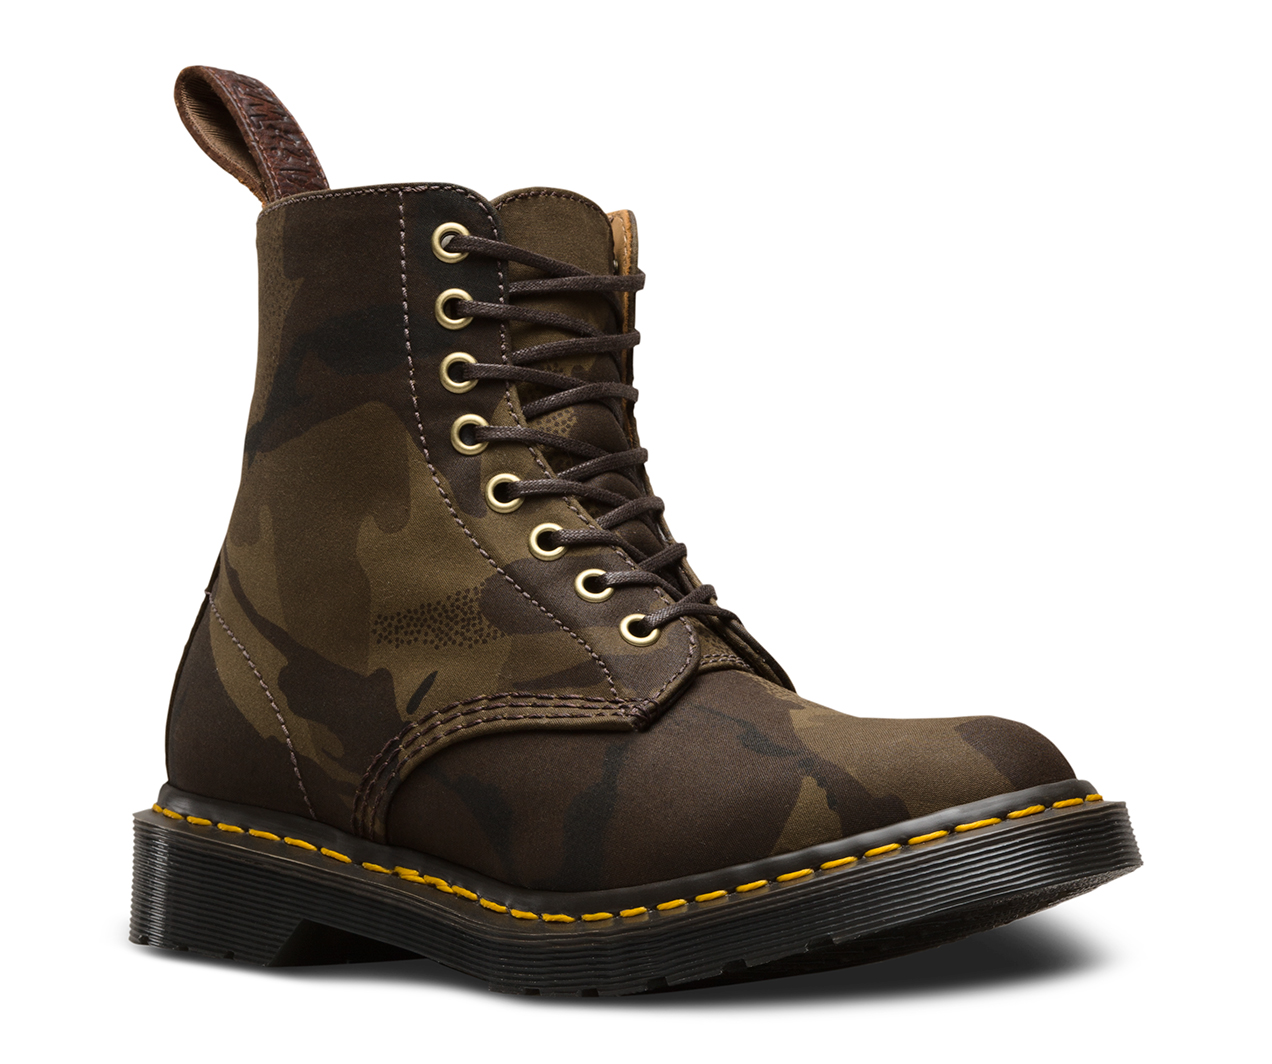 MADE IN ENGLAND CAMO 1460 PASCAL | Women's Made in England Boots & Shoes |  Official Dr Martens Store